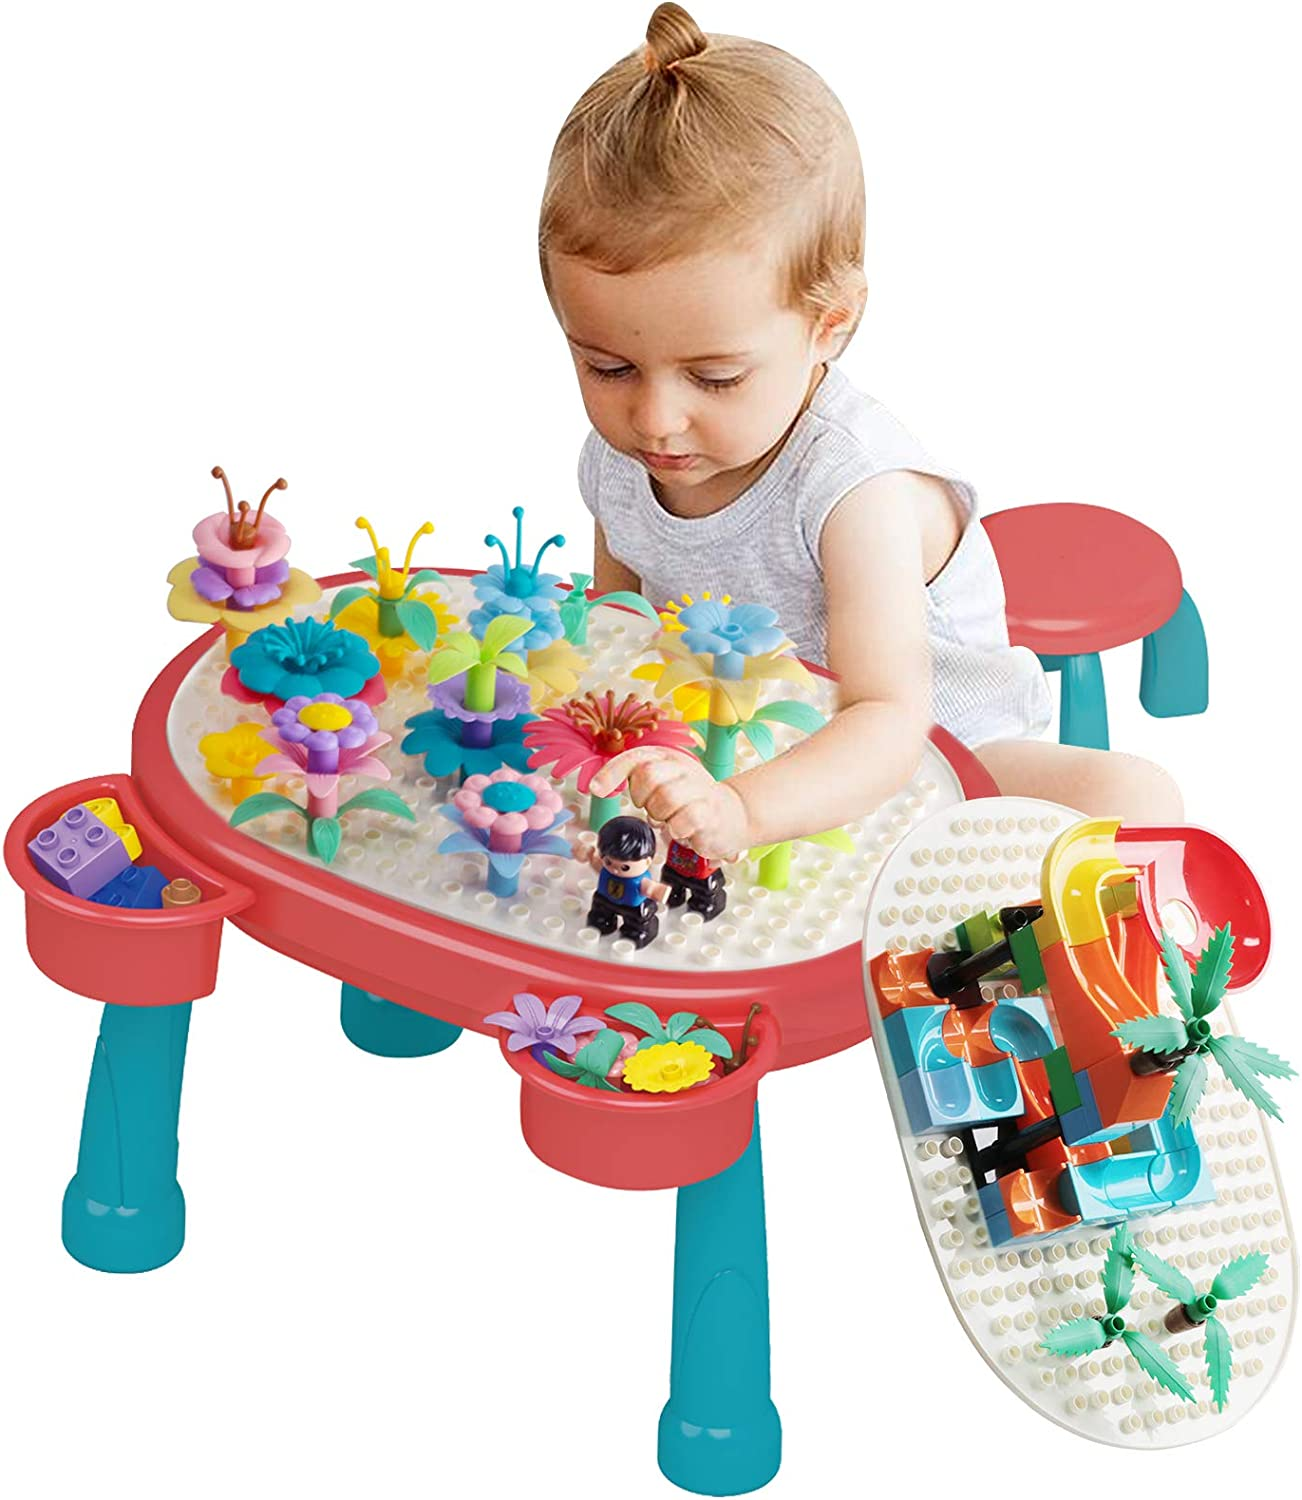 Flower Garden Building Toys & Marble Run Building Blocks Kids Activity Table, Toy for 3 4 + Year Old Girls Boys, Pretend Gardening & Building Educational Toys Christmas Birthday Gift